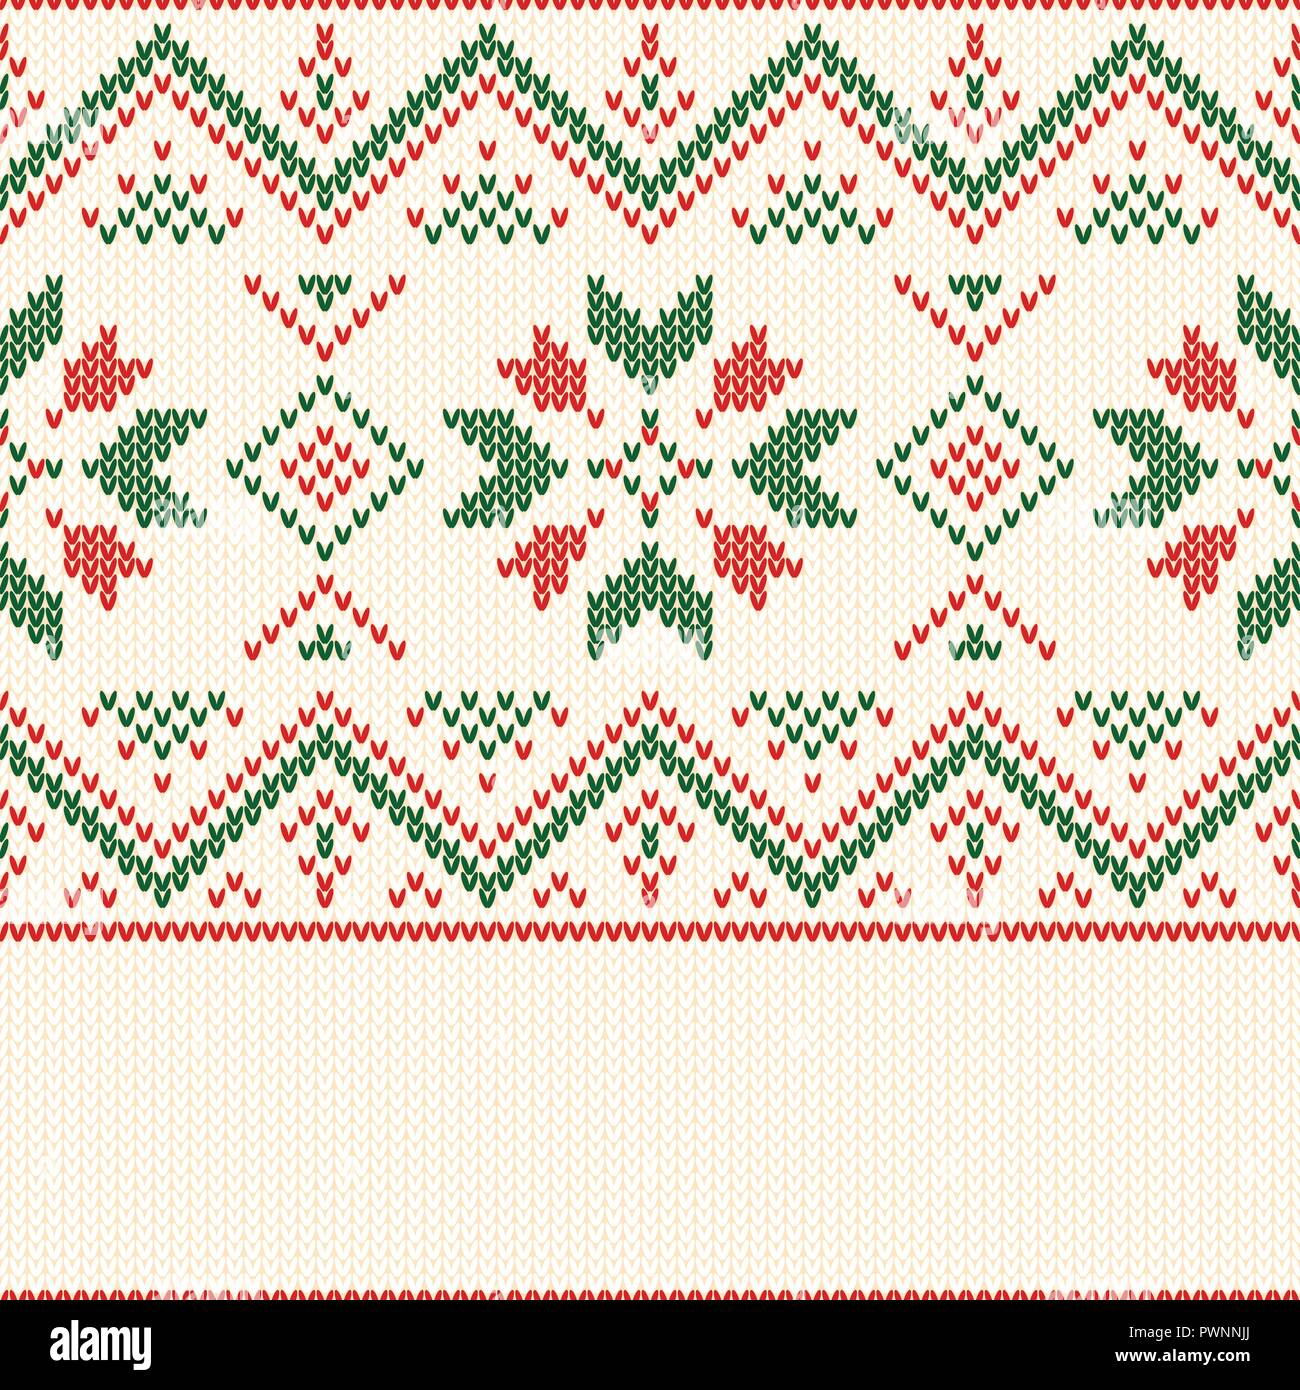 Christmas knitted pattern. Winter geometric seamless pattern. Design for sweater, scarf, comforter or clothes texture. Vector illustration. - Stock Vector